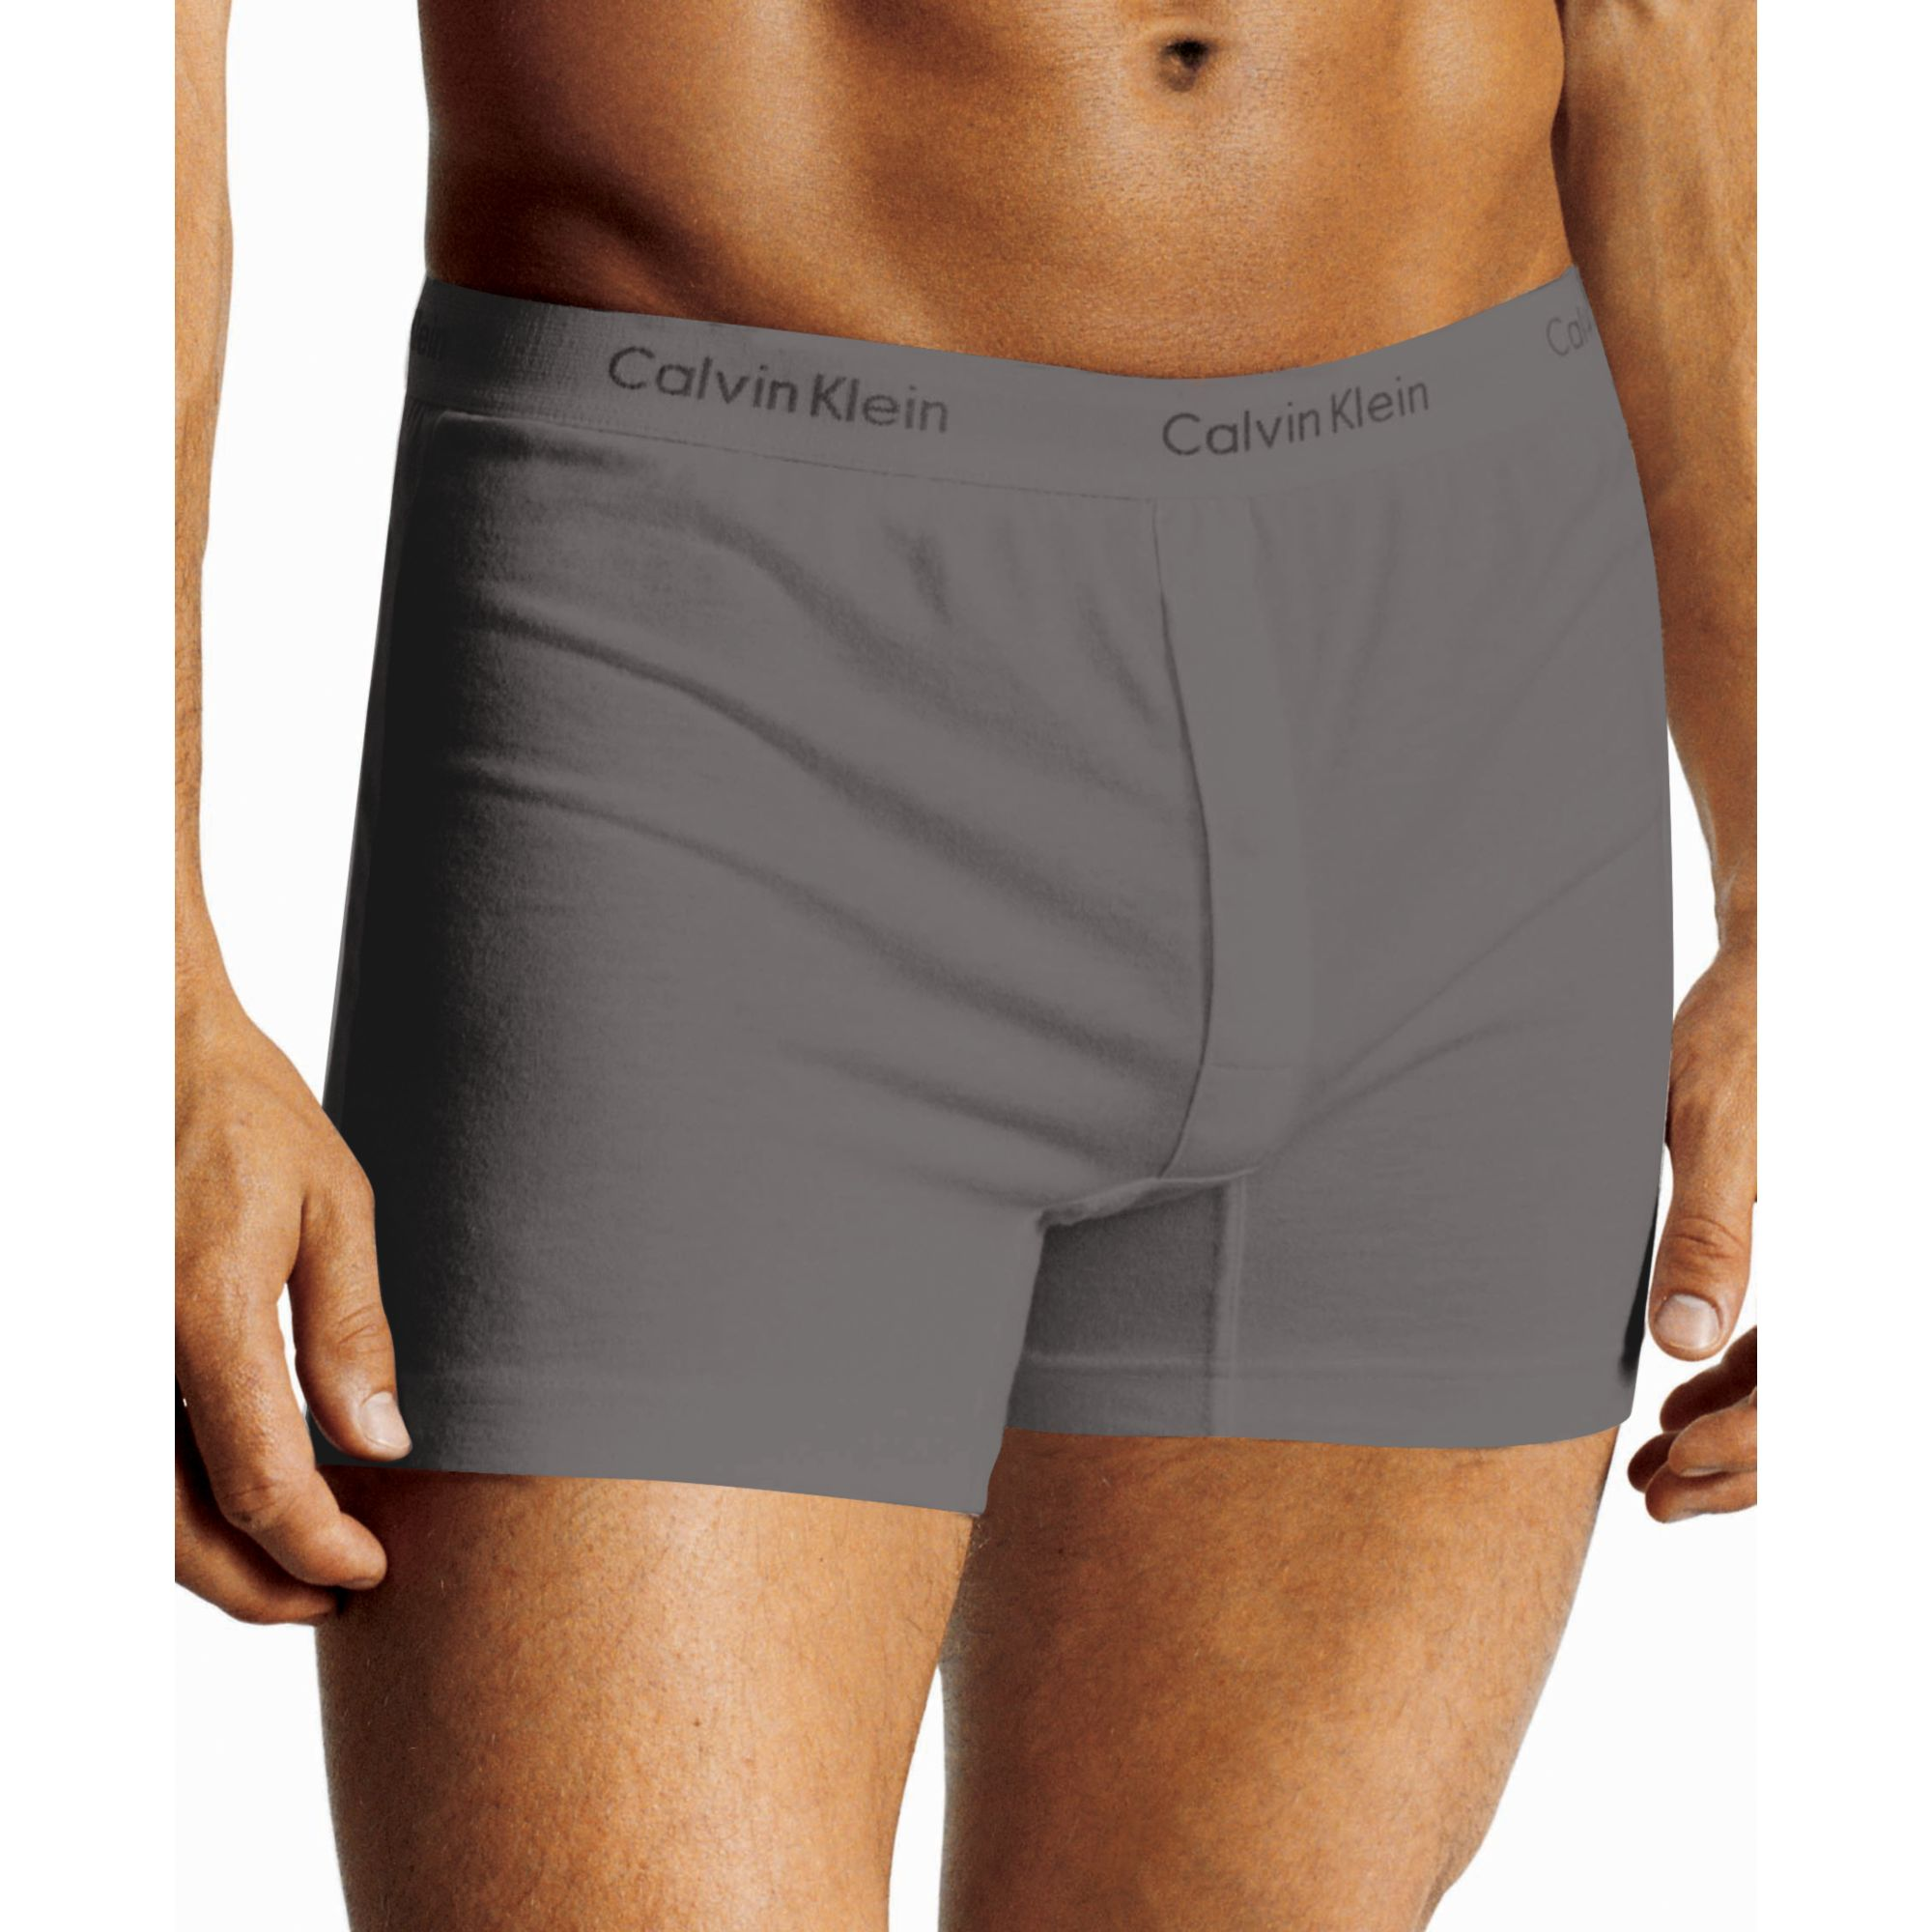 calvin klein classic slim fit knit boxer u1029 in gray for men charcoal lyst. Black Bedroom Furniture Sets. Home Design Ideas